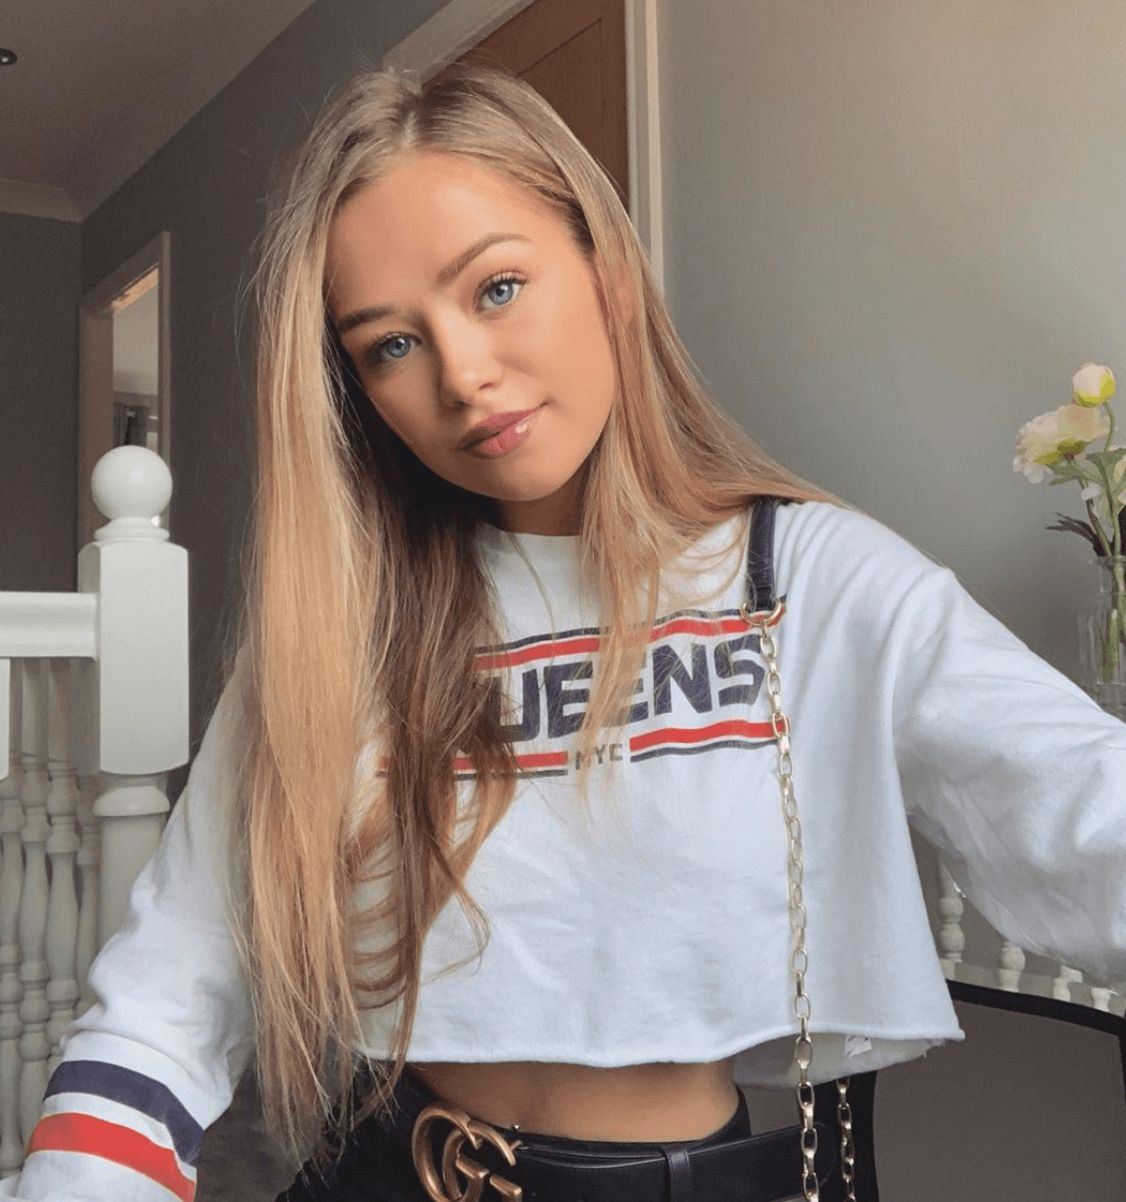 Image may contain: Connie Talbot, Britain's Got Talent, BGT, The Champions, then, now, 2019, before, after, audition, Instagram, young, old, age, job, Furniture, Sweater, Flower Arrangement, Female, Flower, Blossom, Plant, Interior Design, Indoors, Sleeve, Human, Person, Blouse, Apparel, Clothing